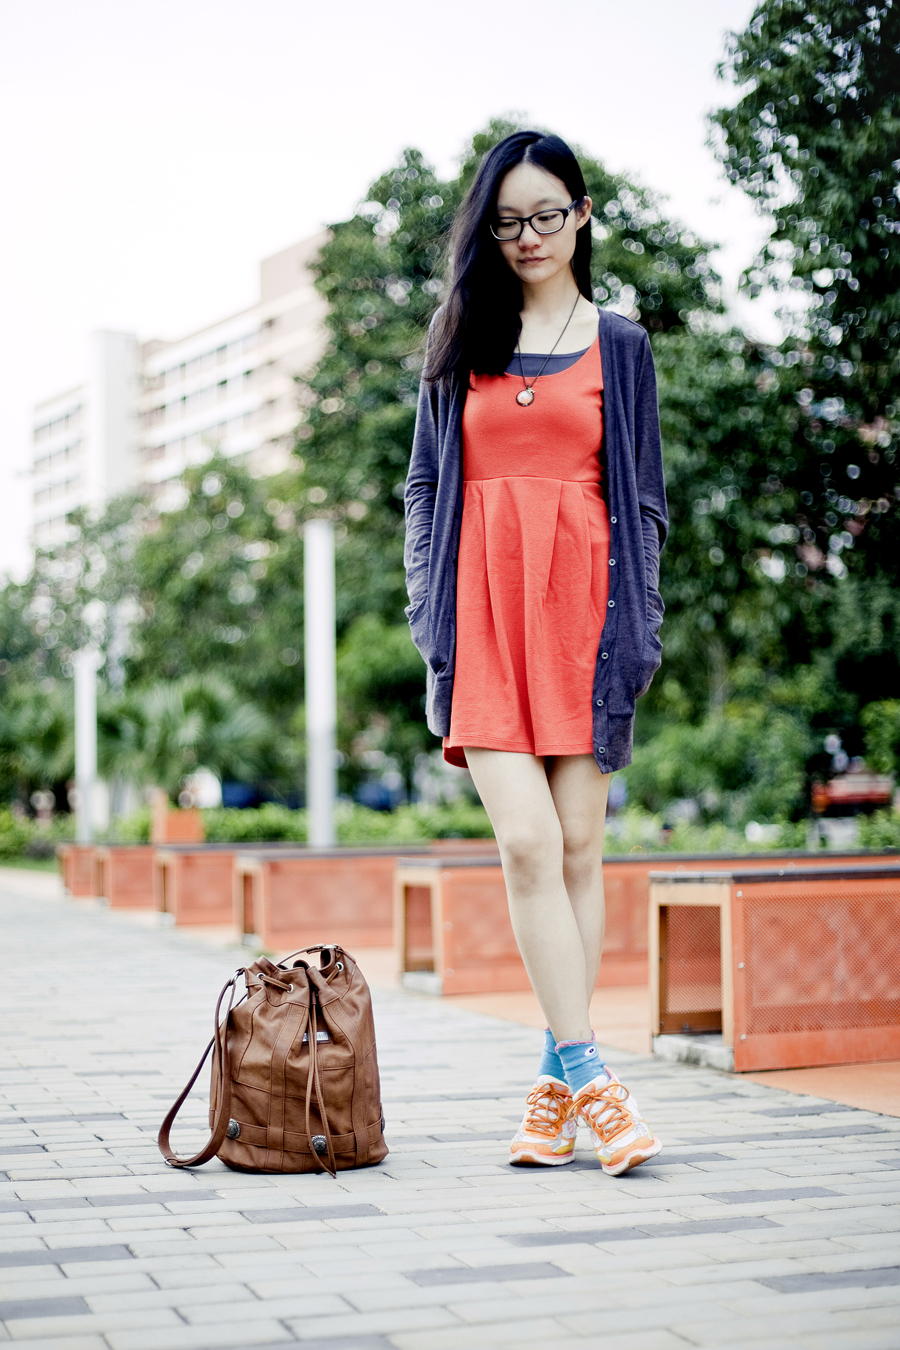 Outfit of the day (#ootd)- Forever 21 orange-red sleeveless dress, Target slate boyfriend cardigan, The Sock Market turquoise fish socks, Skechers neon orange sneakers, Gentle Fawn brown leather hobo sling bag.